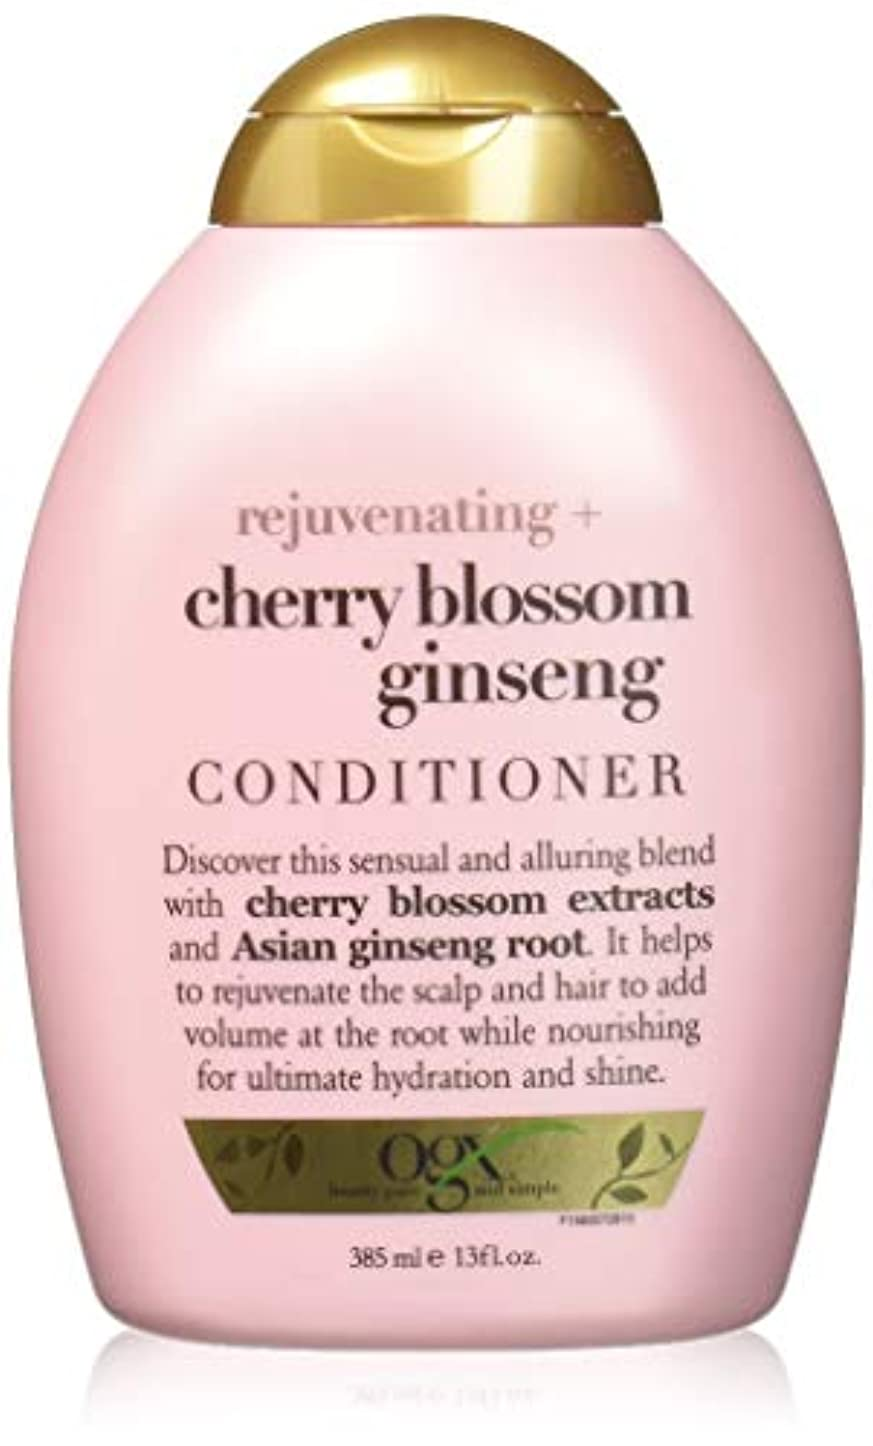 化学針増加するOrganix rejuvenating hair conditioner cherry blossom ginseng - 13 oz (並行輸入品)